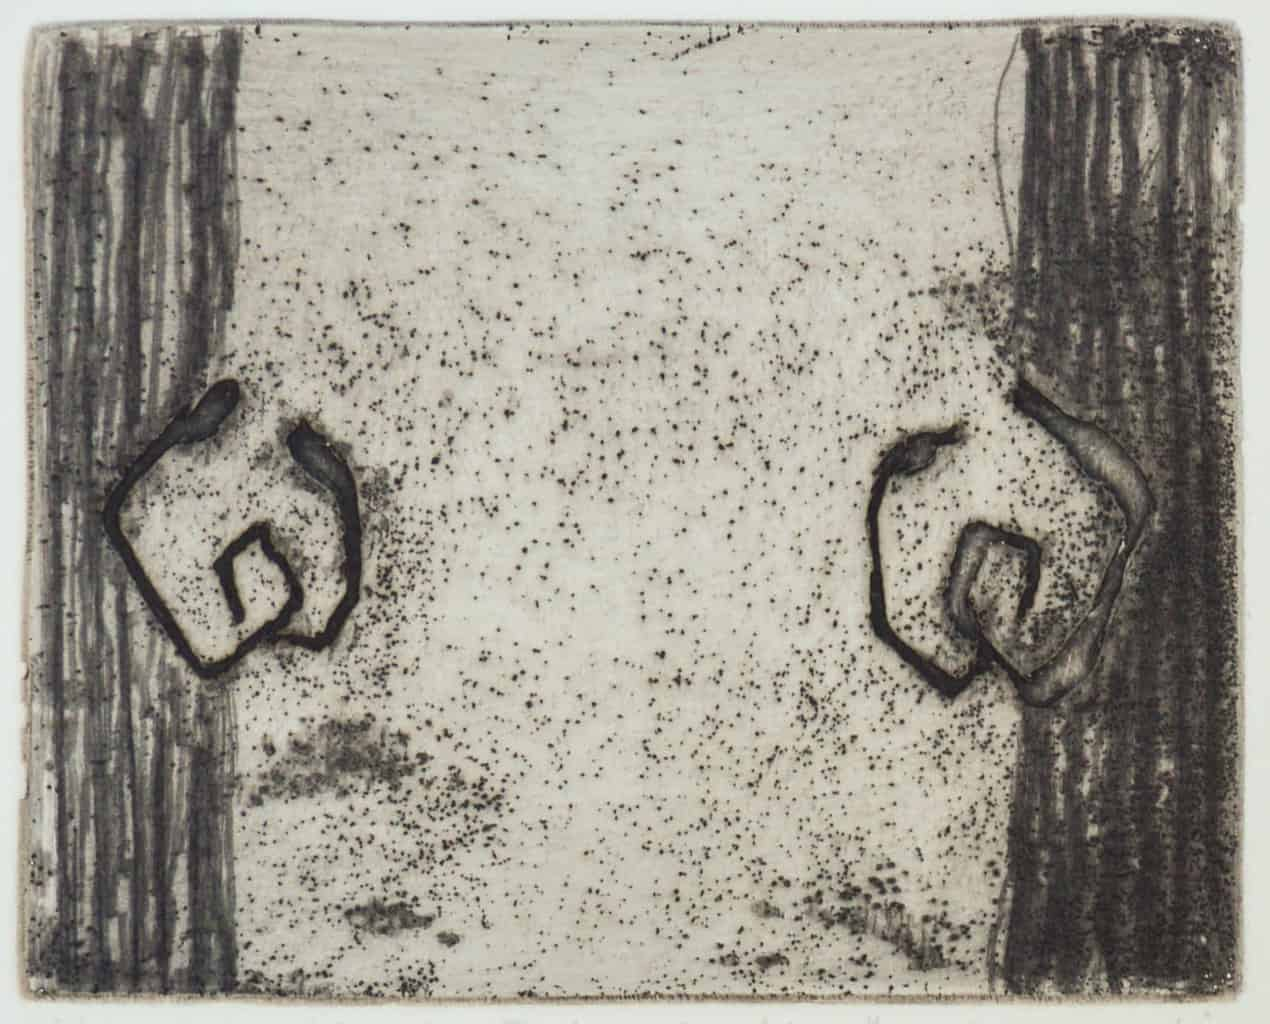 """""""Determination"""" - image from the """"Hands"""" series featuring various stances of gesturing hands. Original print etching by painter-printmaker Marina Kim"""